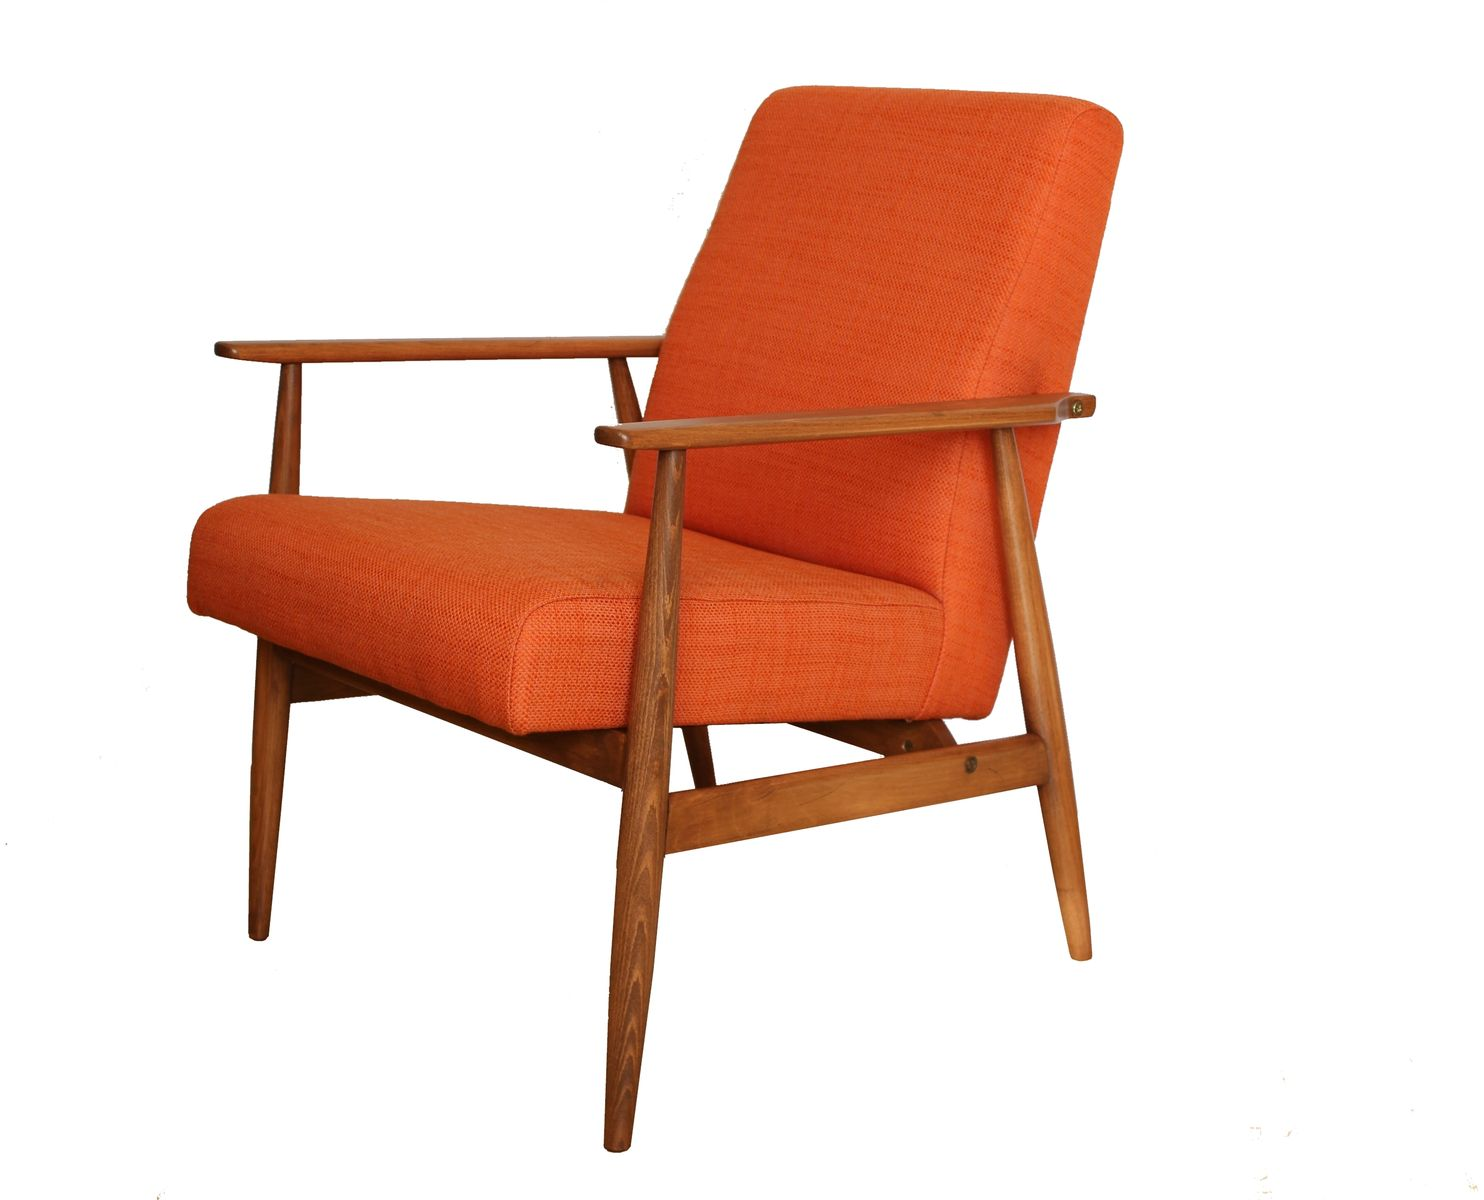 Moderner Mid-Century Sessel in Orange von Hanna Lis, 1960er